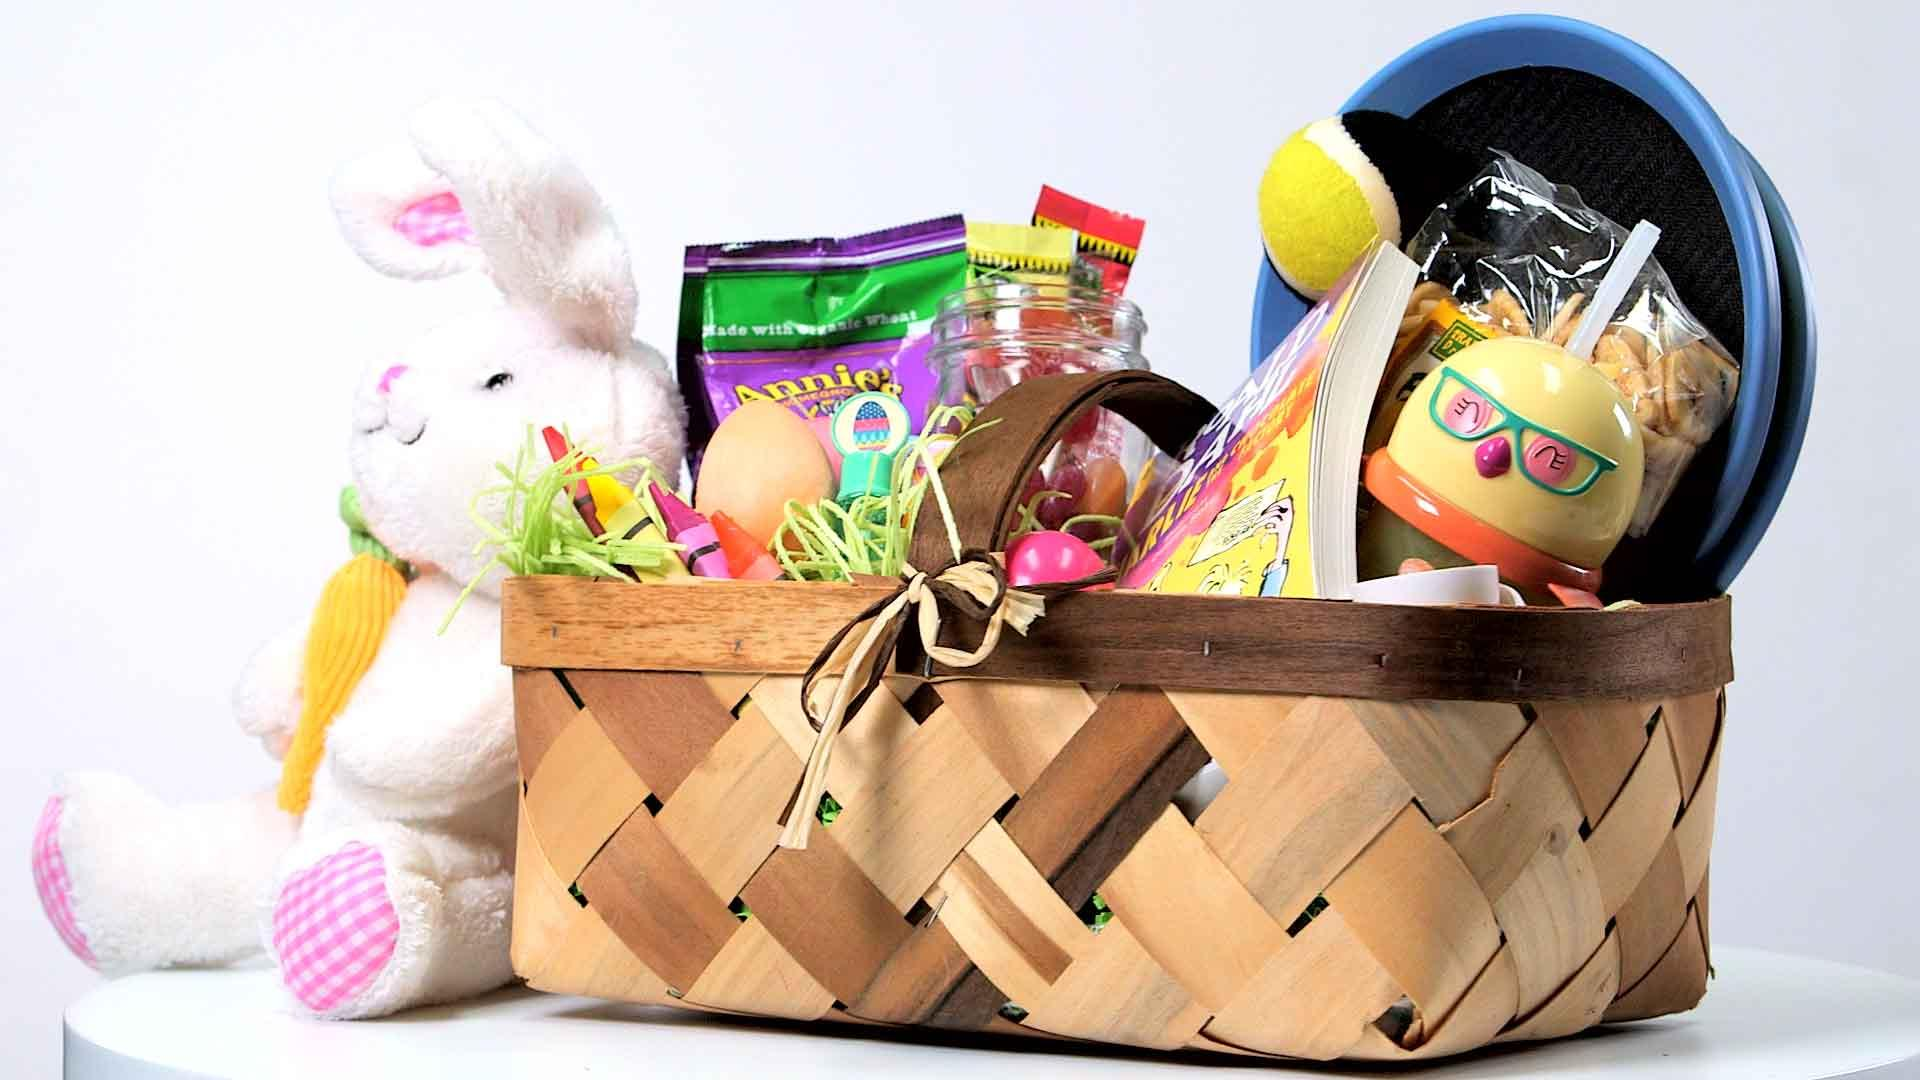 Easter recipes menus healthy breakfast dinner dessert and sides healthy easter basket ideas negle Gallery